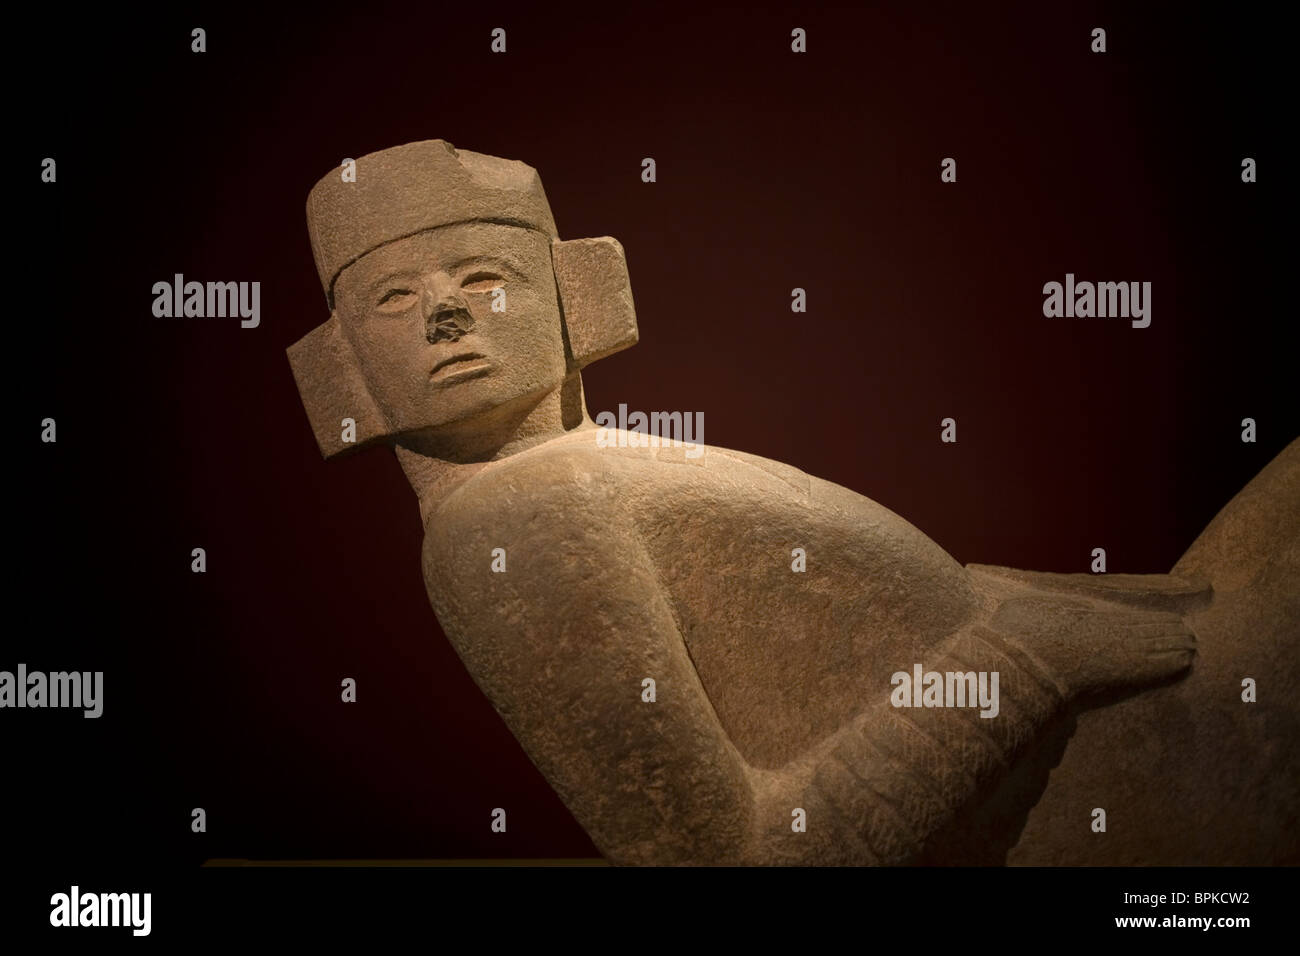 A Chac Mool,a Mayan type of sculpture, from the ruins of Chichen Izta at the Museum of Anthropology and History, - Stock Image